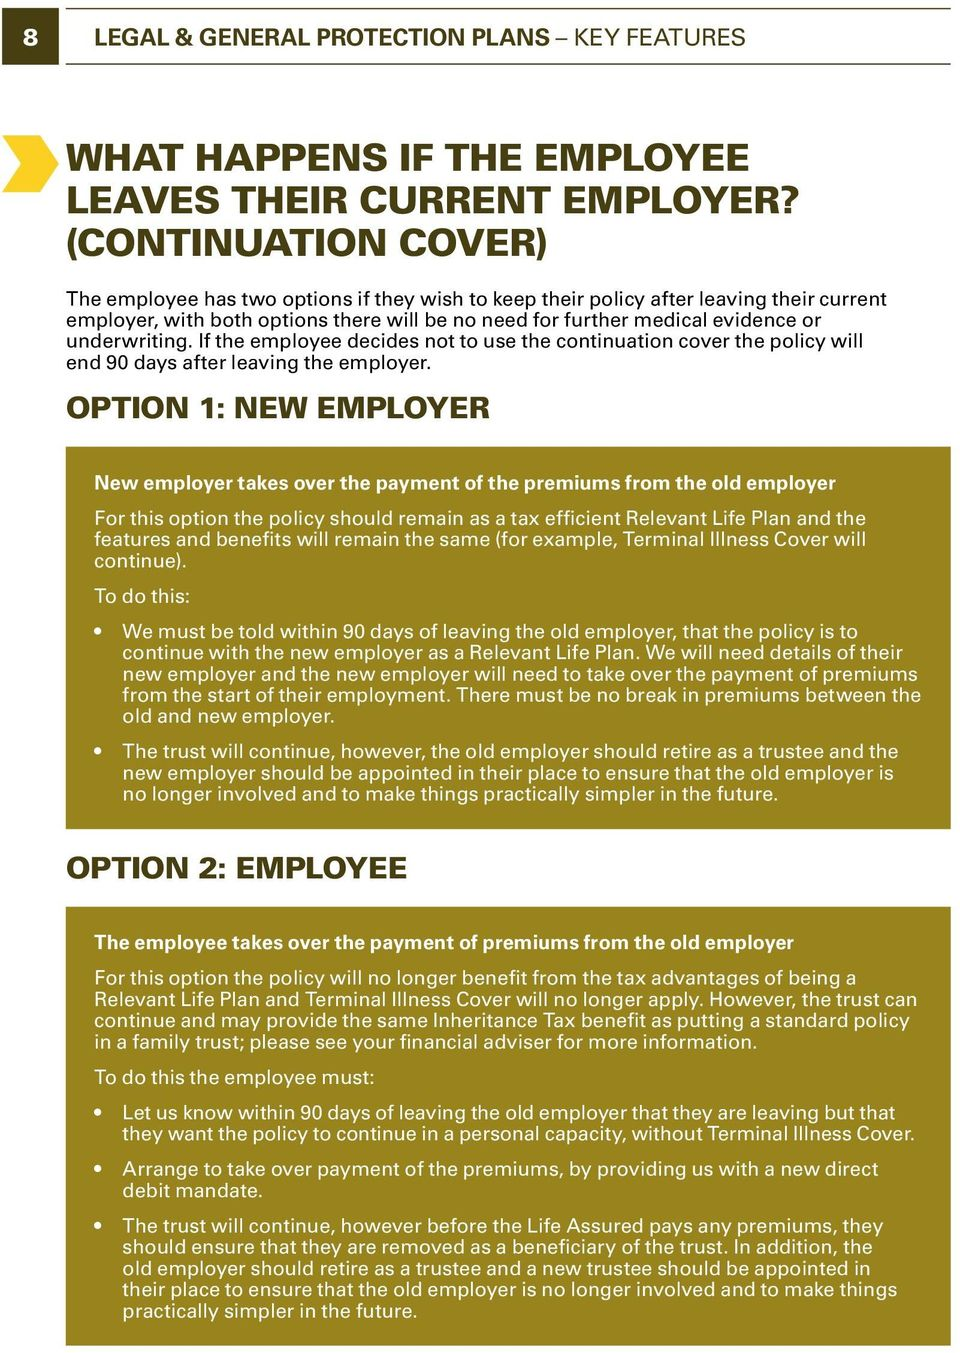 underwriting. If the employee decides not to use the continuation cover the policy will end 90 days after leaving the employer.